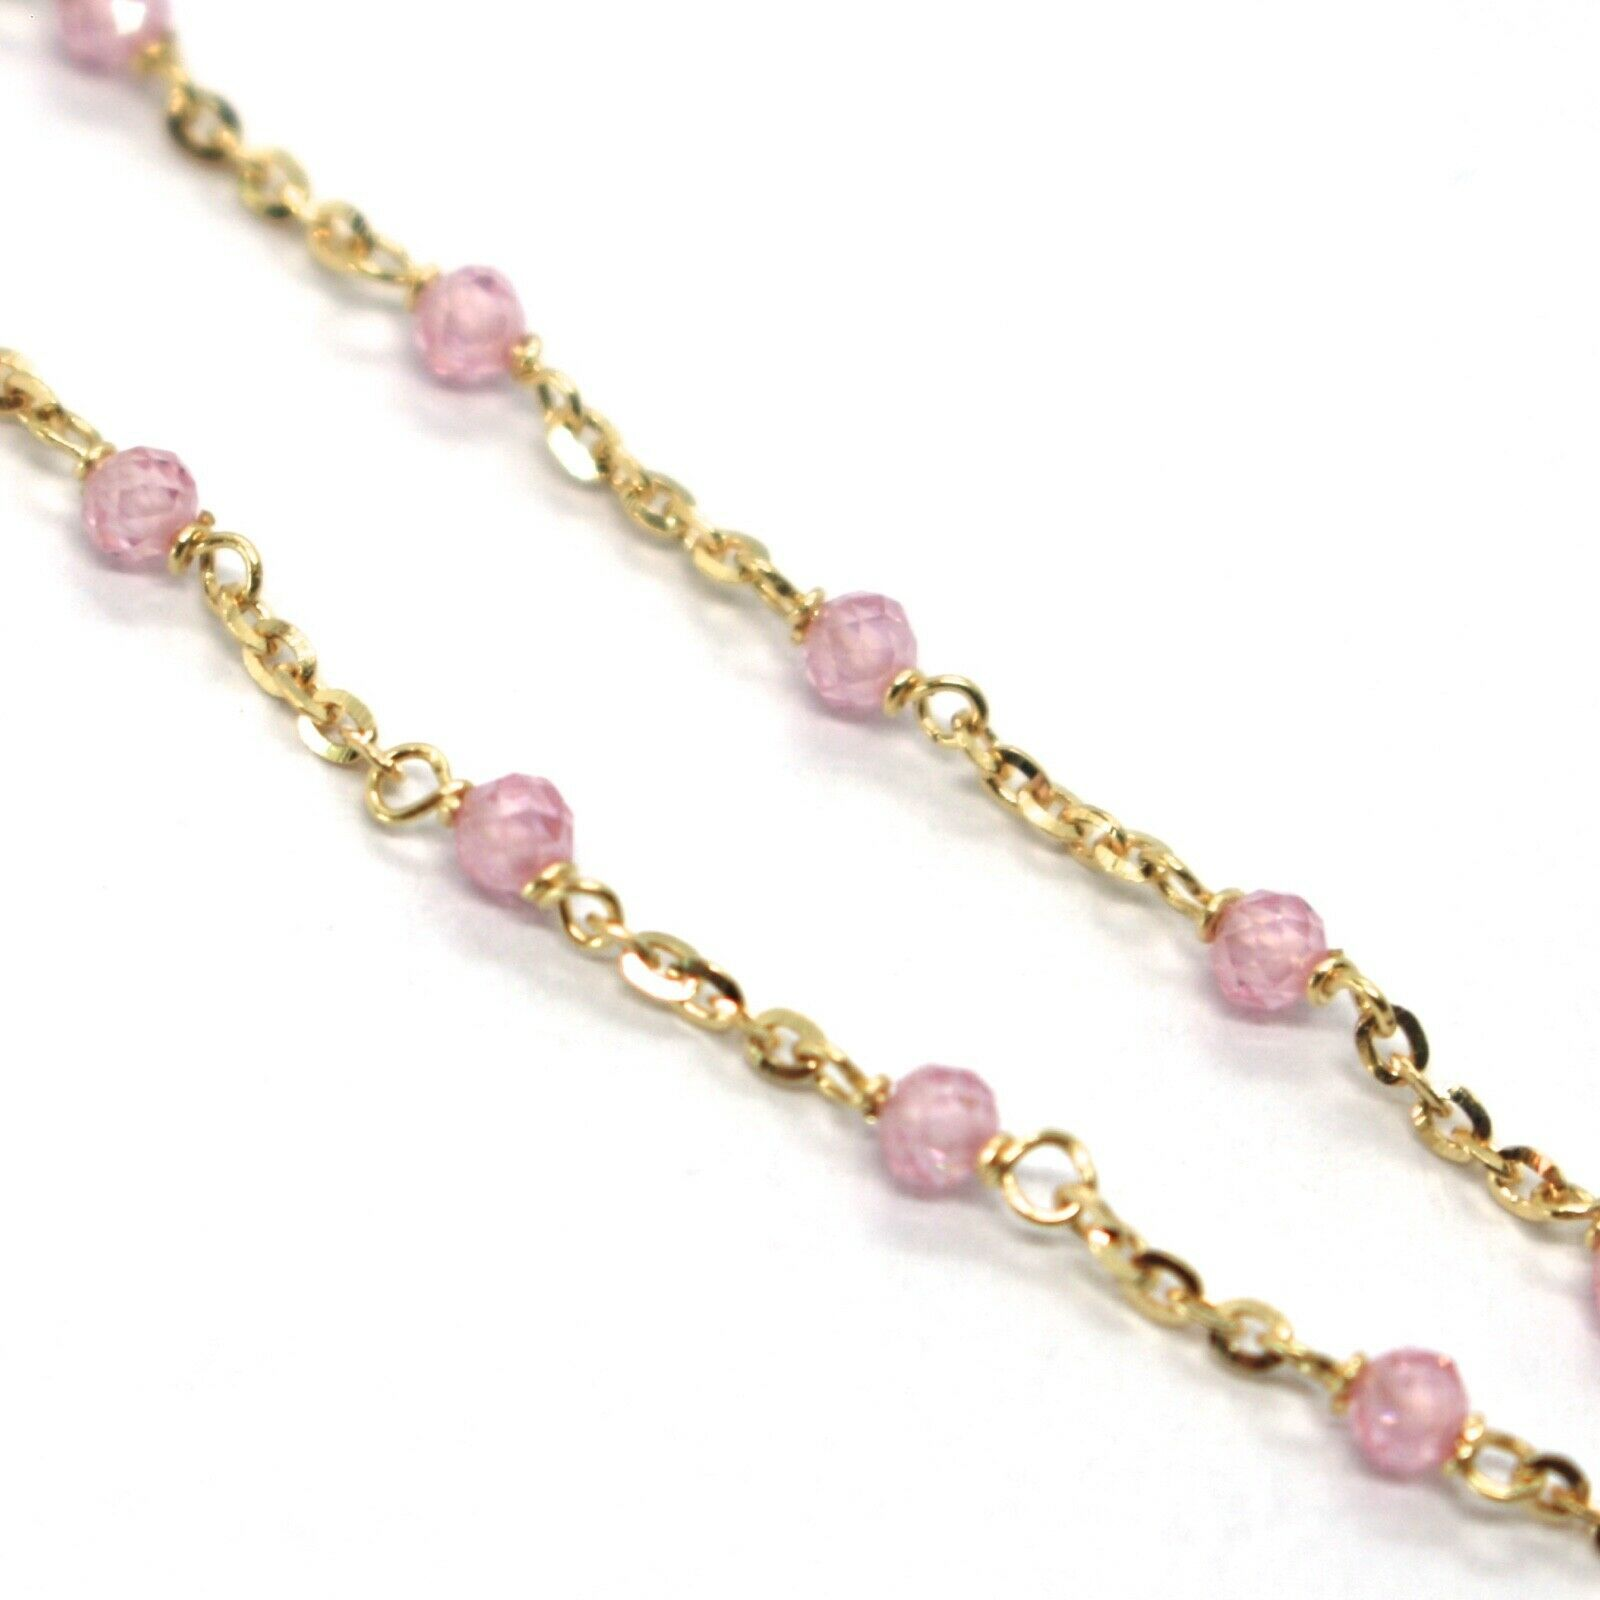 Armband Gelbgold 18K 750, Cubic Zirkonia Pink, Kugel Facettiert, Rolo Oval image 3